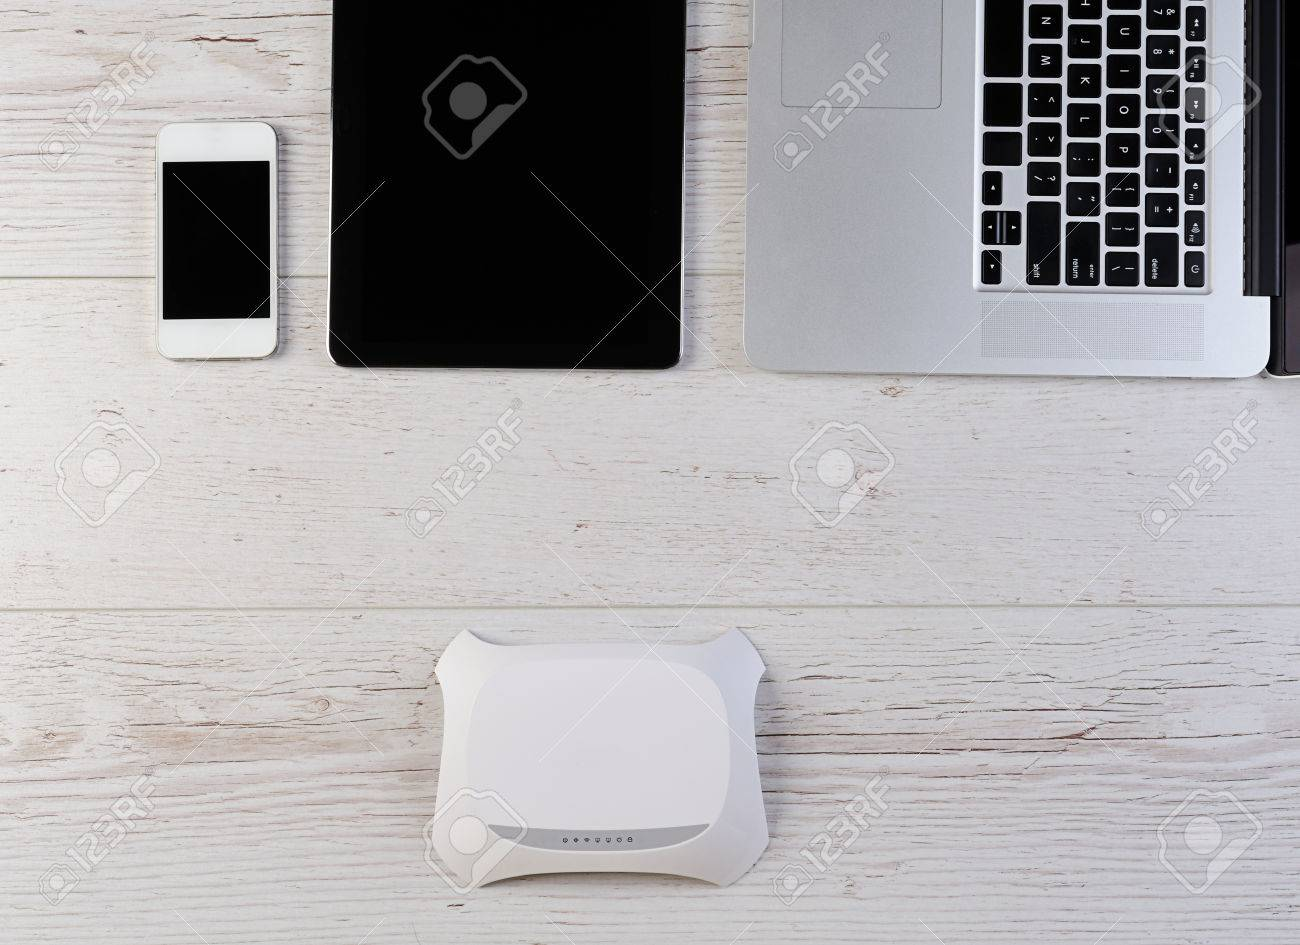 Wifi internet router modem connect laptop tablet and smartphone wifi internet router modem connect laptop tablet and smartphone on wood stock photo 50744305 keyboard keysfo Choice Image